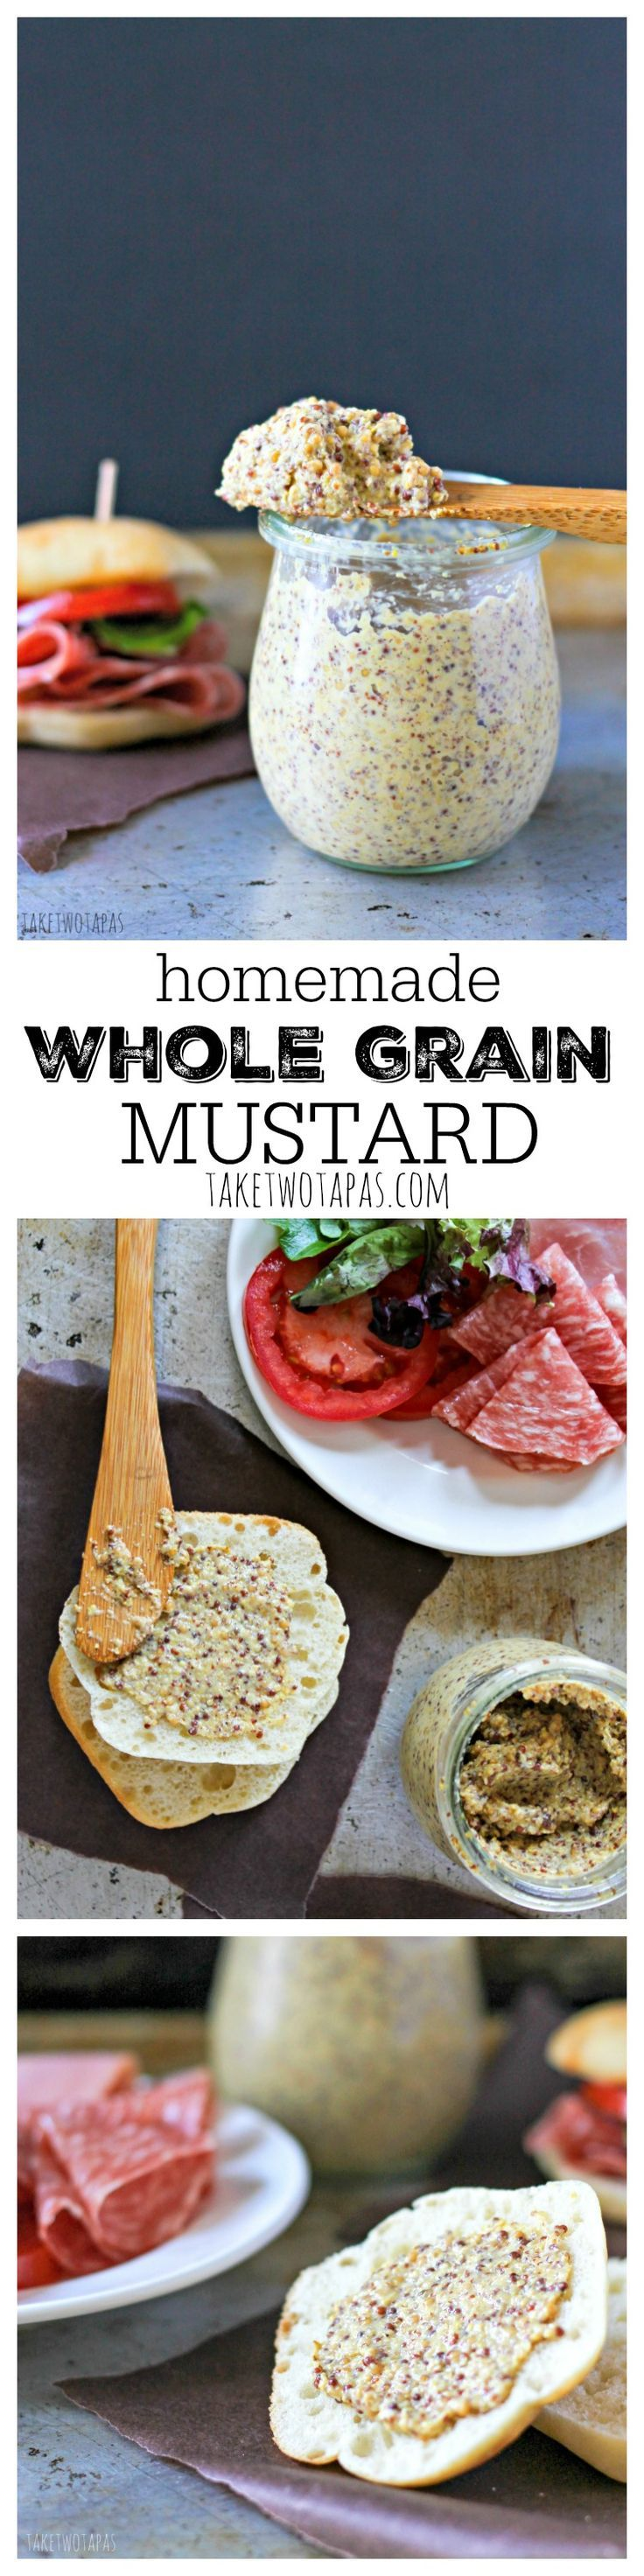 Getting tired of buying mustard? Make your own! It's simple and you can add your own flavors! Customize your own condiments to match your menu! Homemade Whole Grain Mustard Recipe | Take Two Tapas